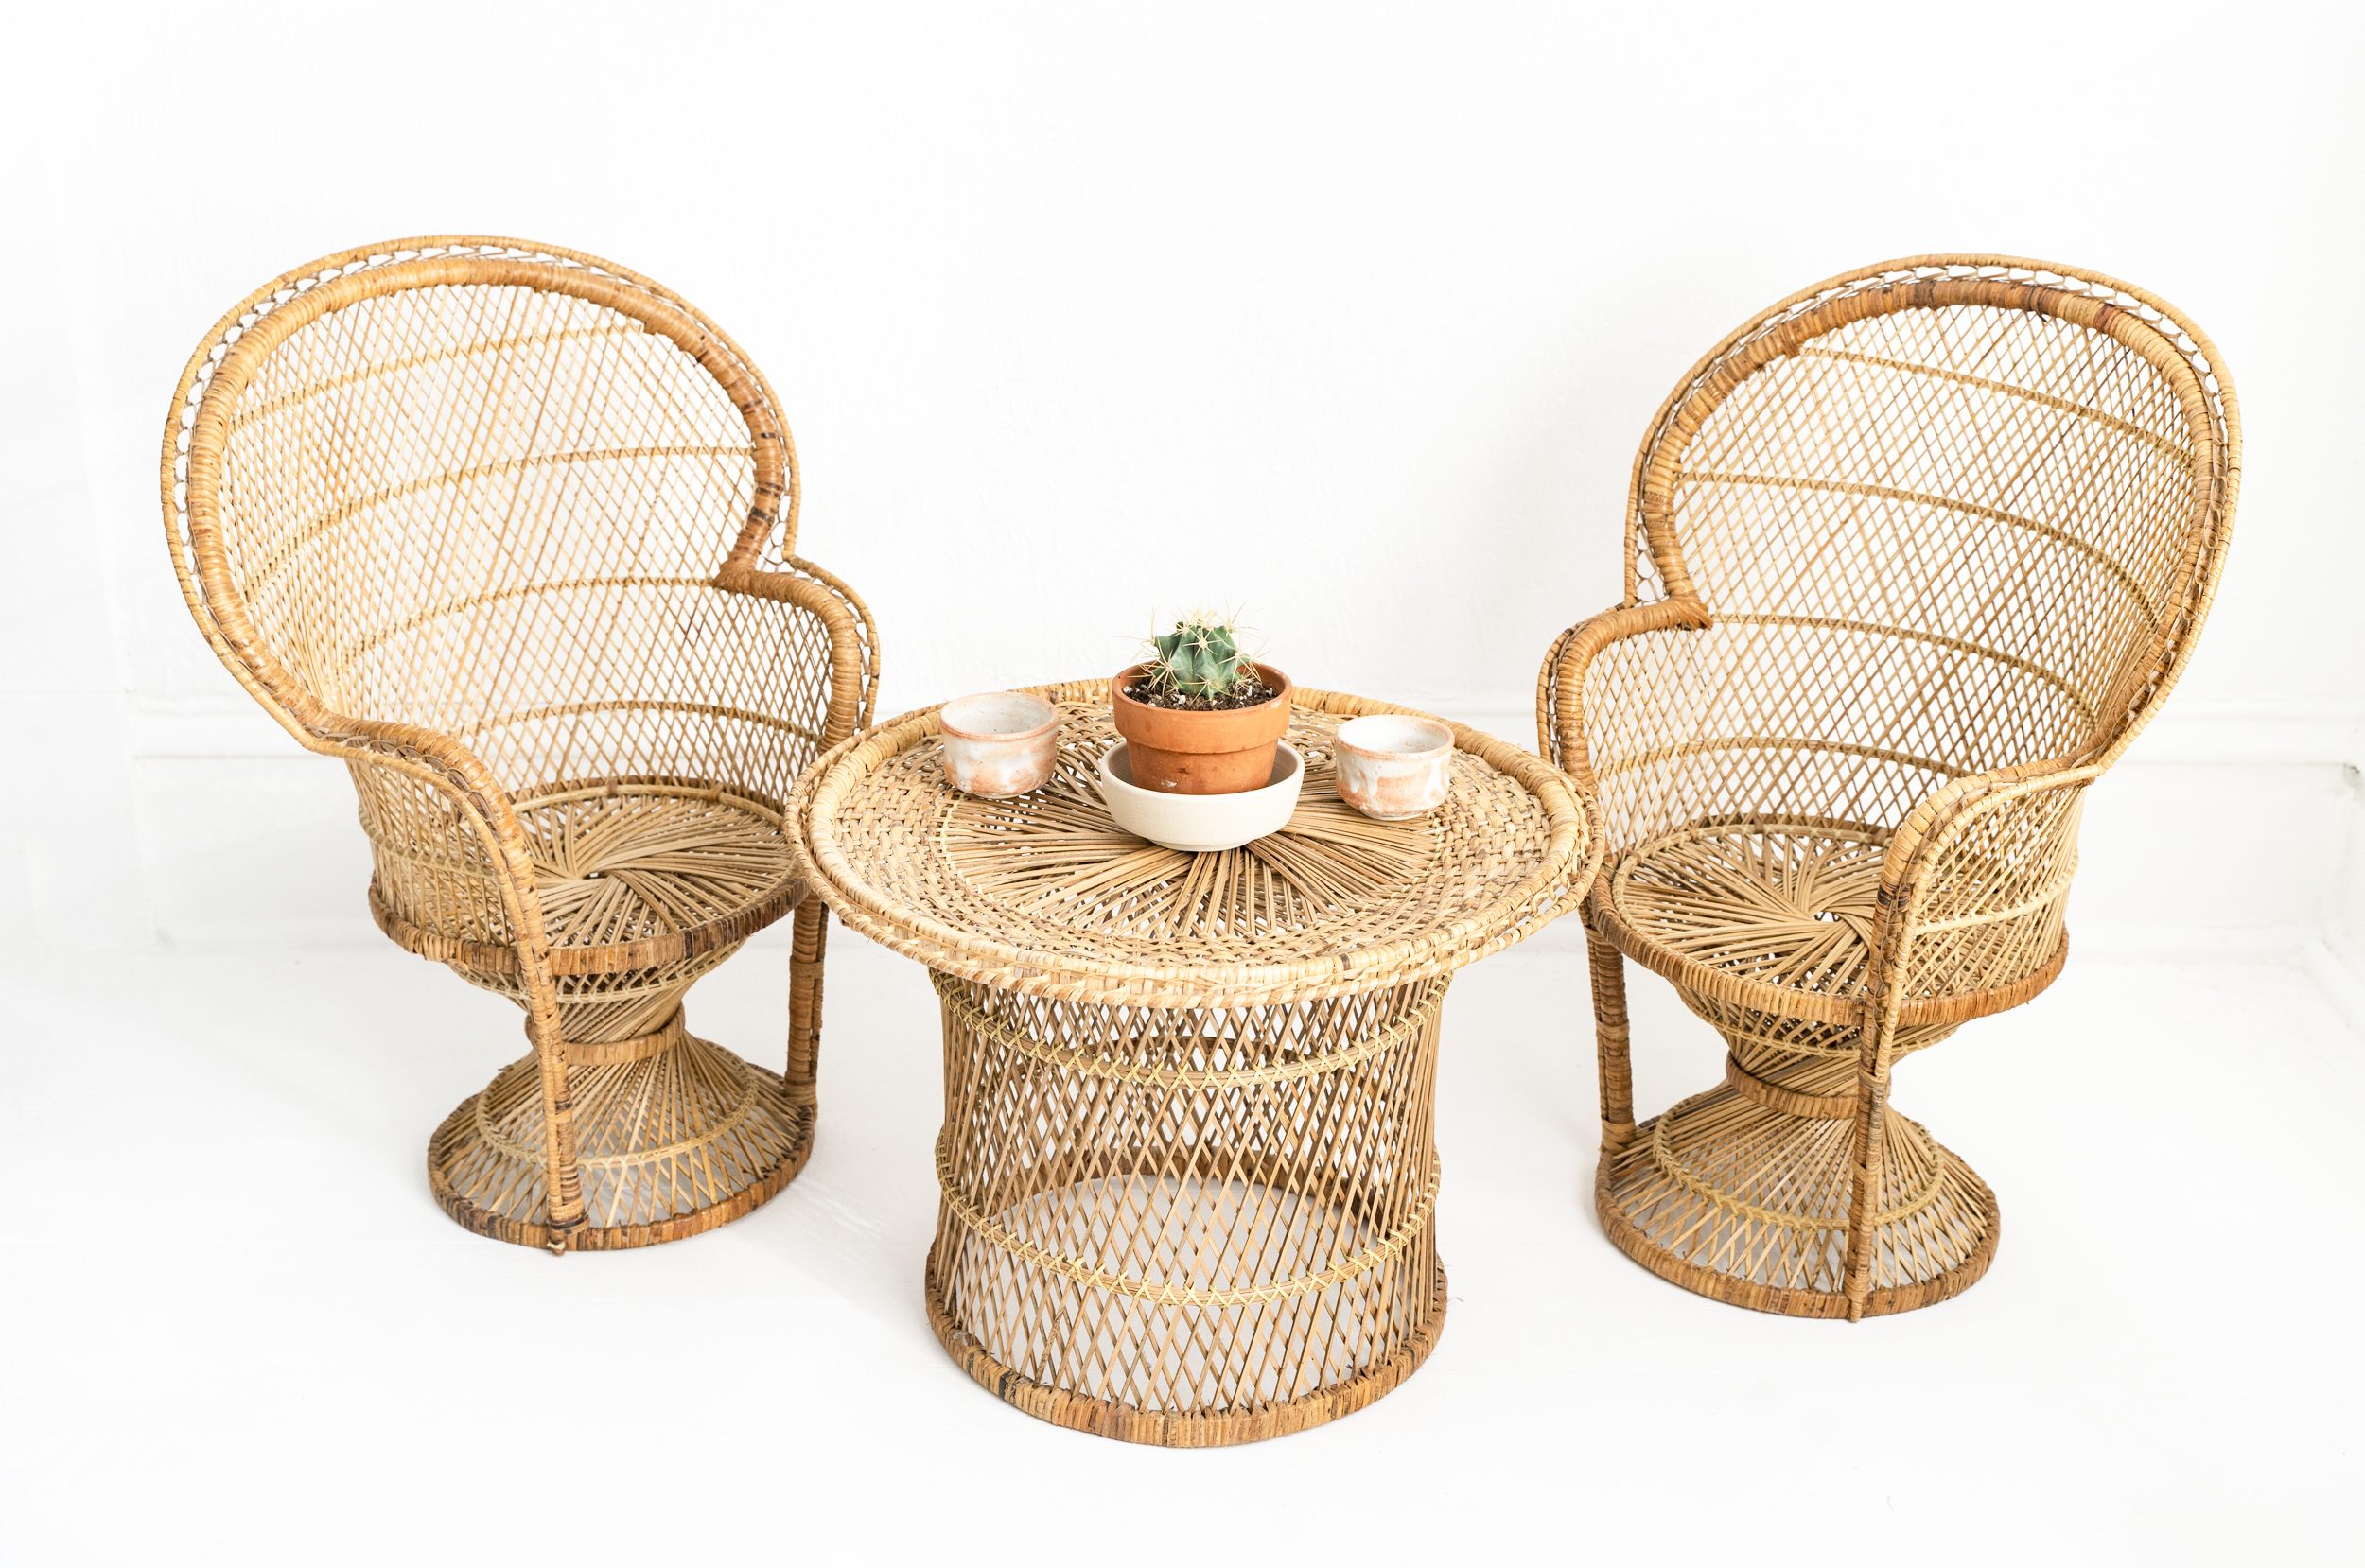 vintage kids rattan and wicker set -   $162 sold